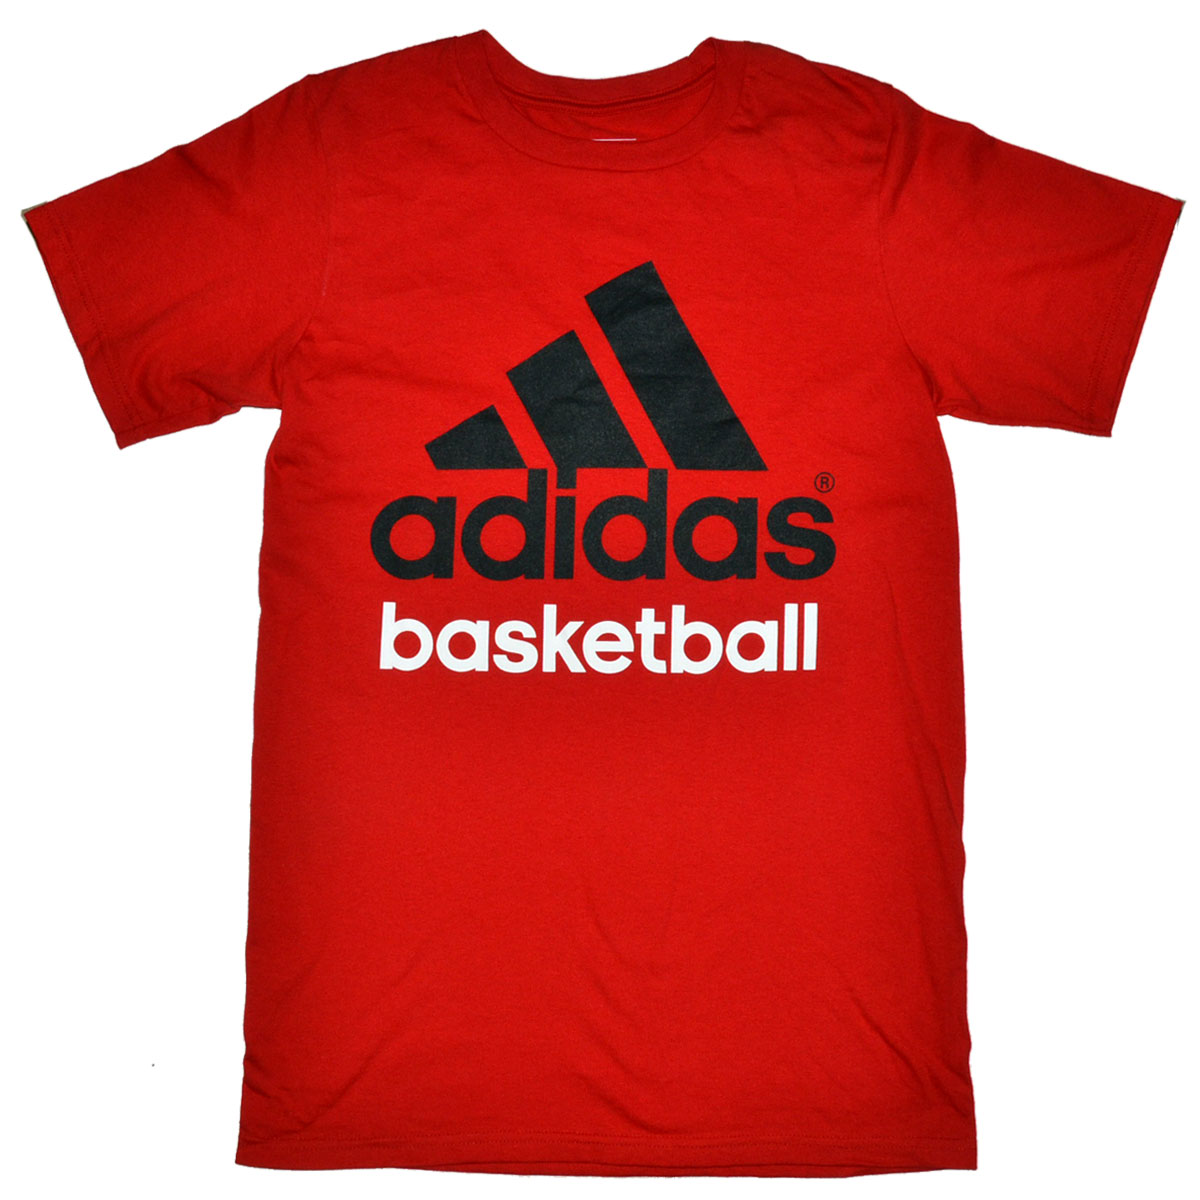 adidas basketball mens red tshirt mycraze